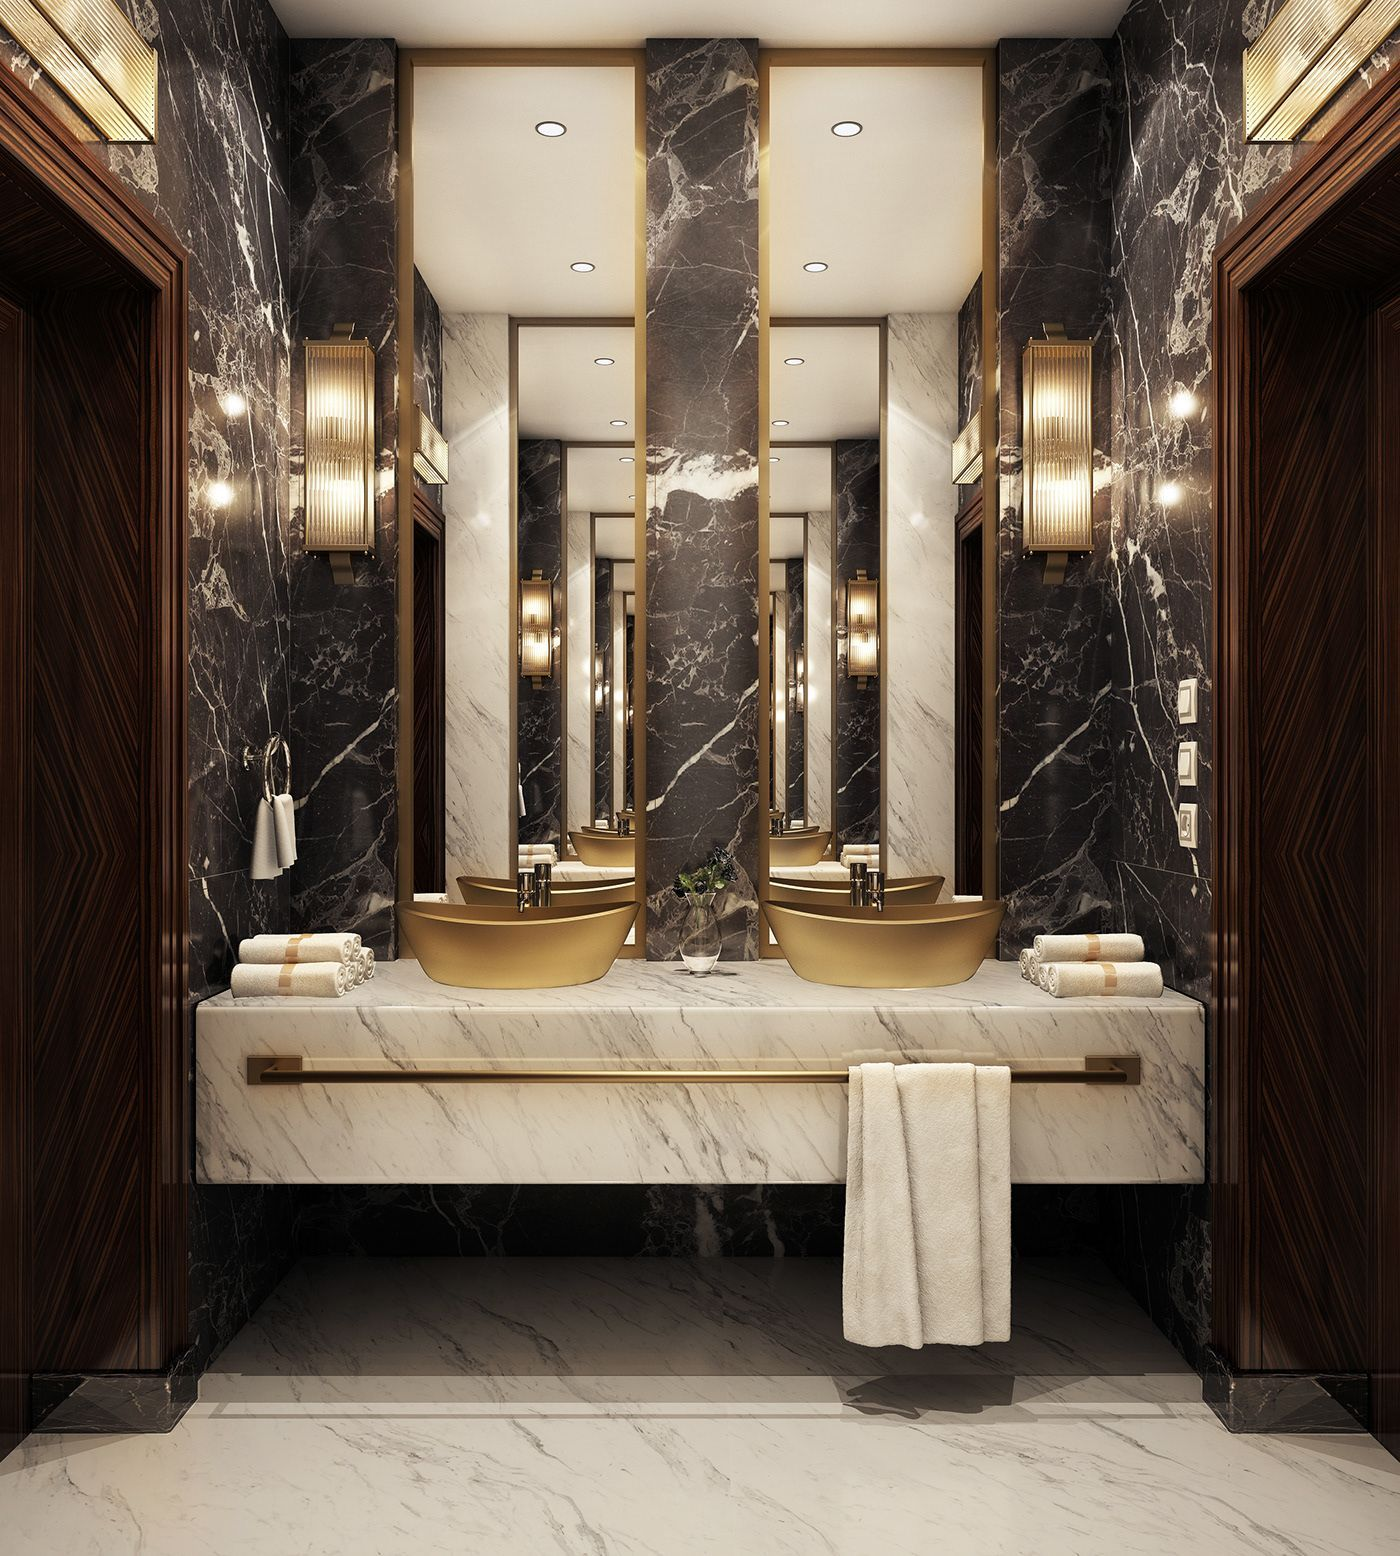 3 Ways To Add Luxury To Small Bathrooms In NYC